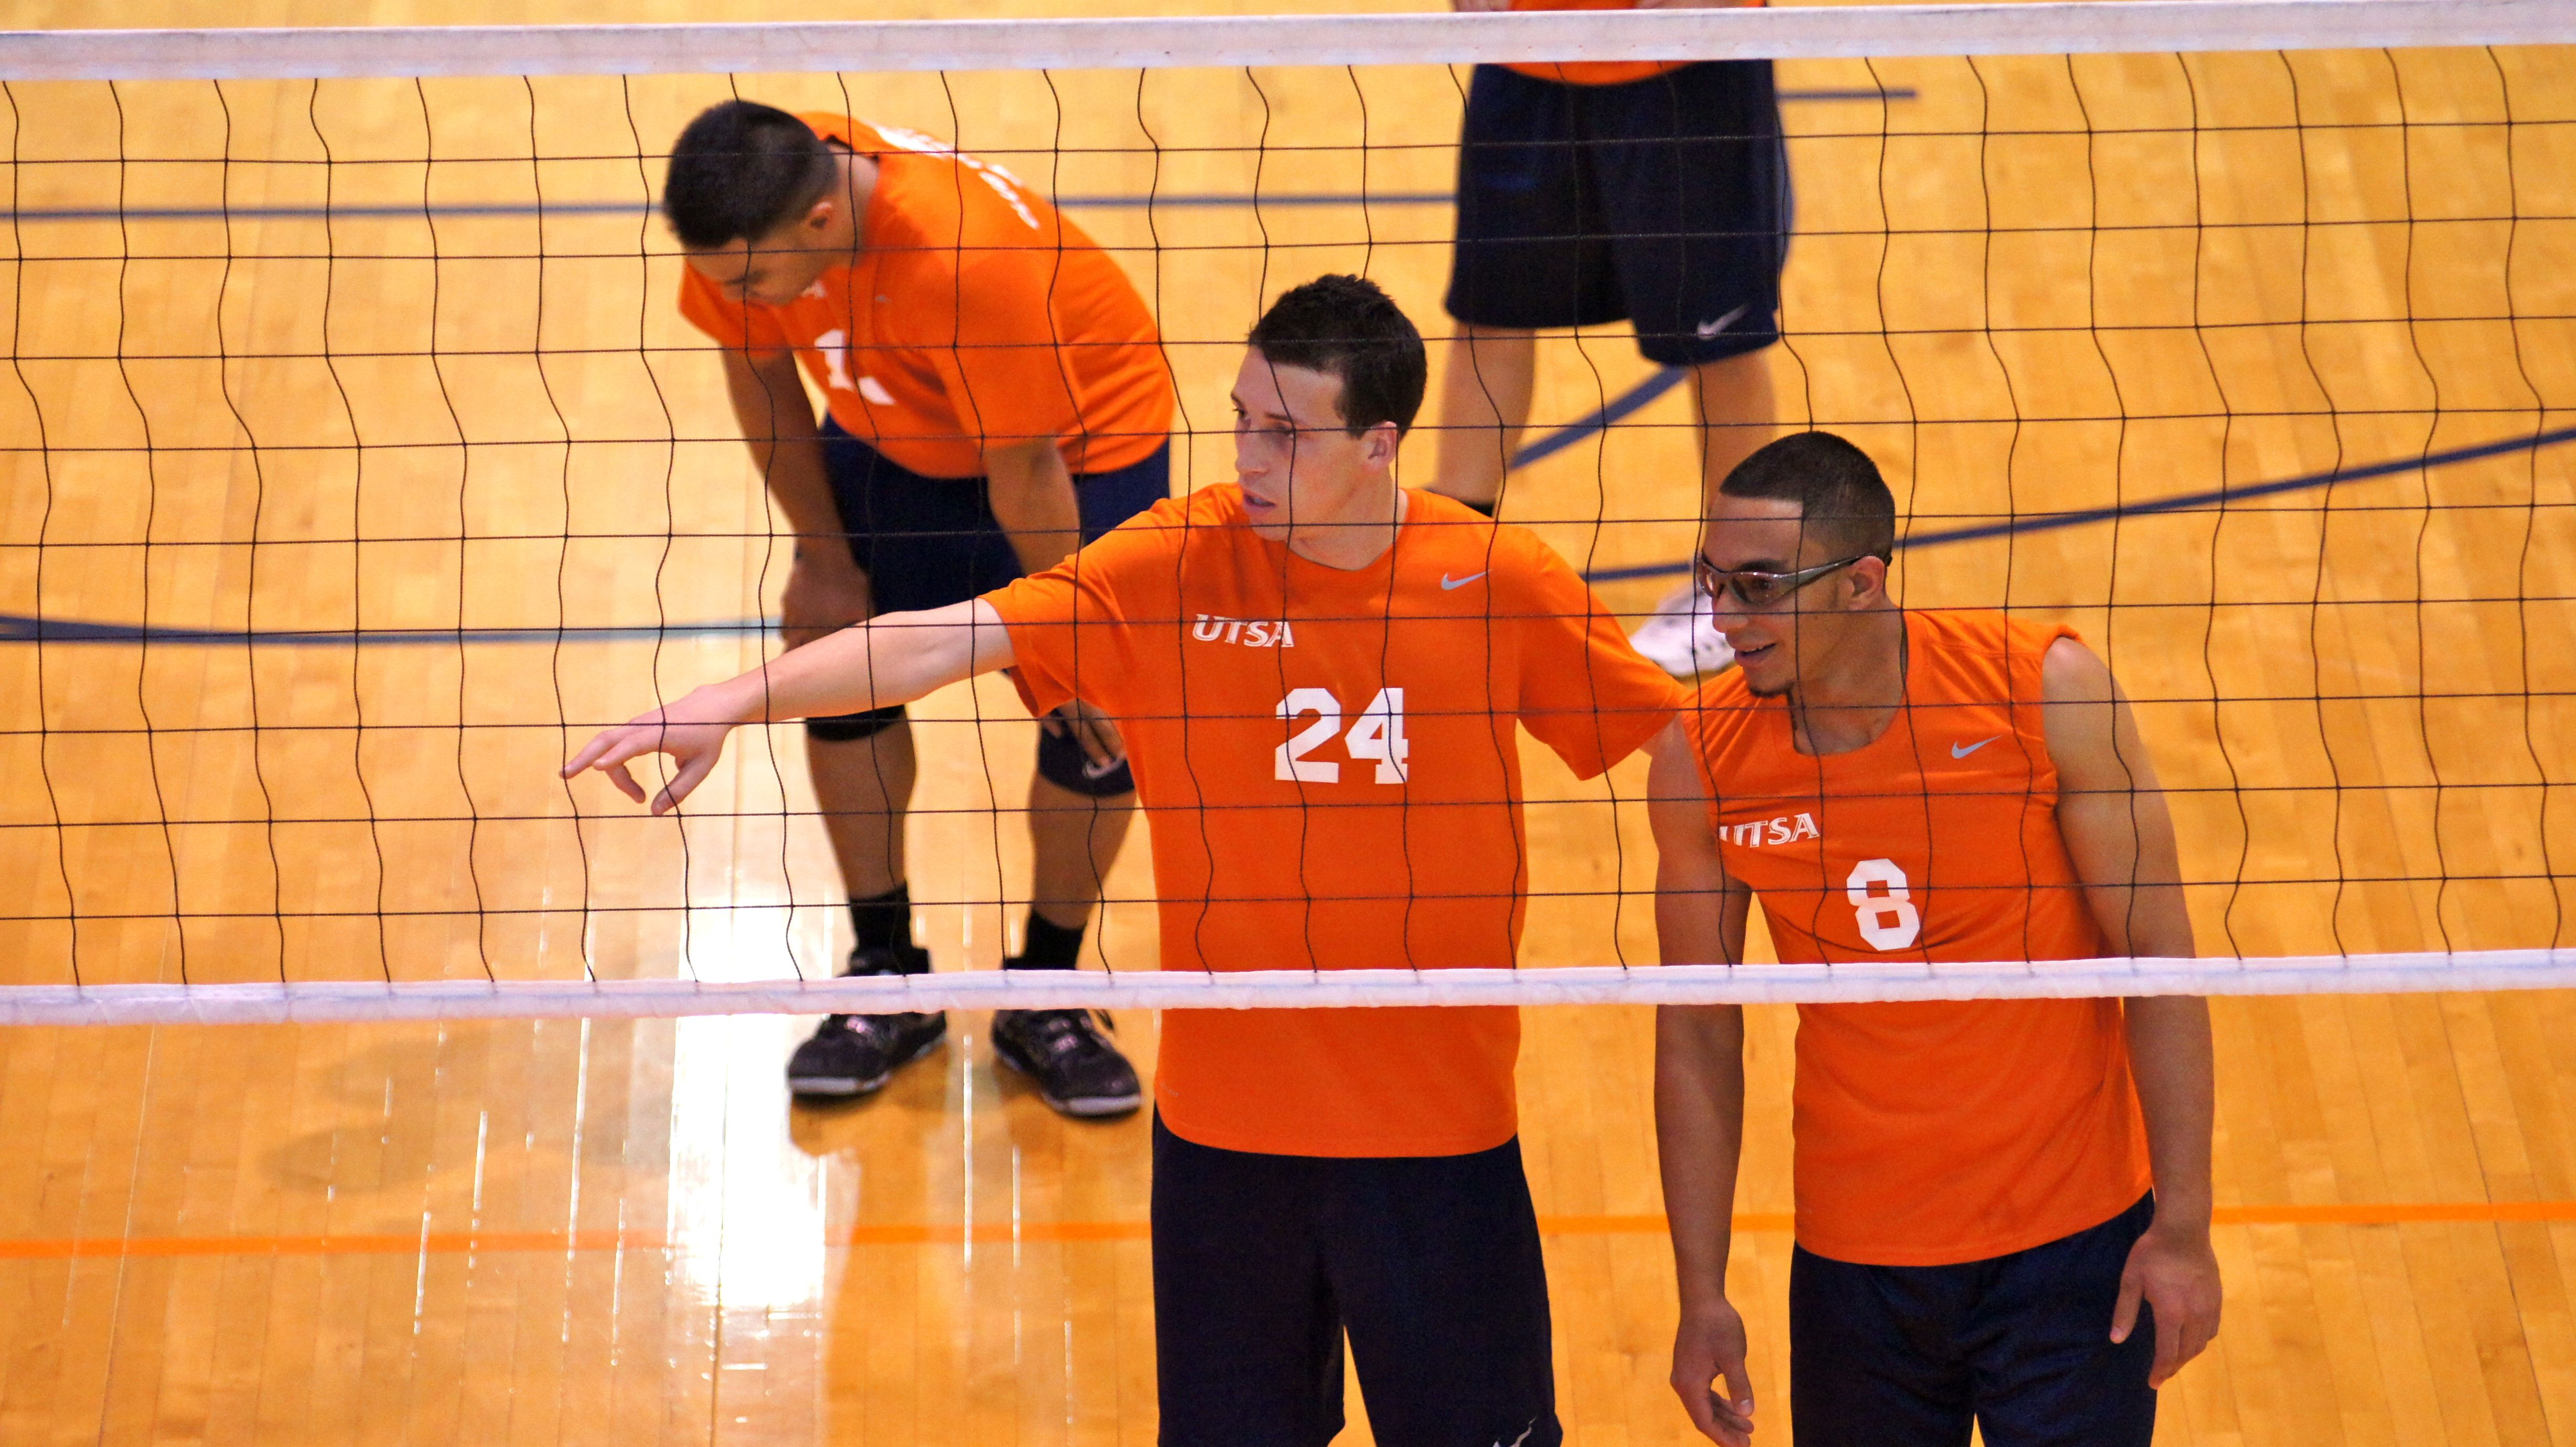 Siva Regional Volleyball Tournament Hosted At Utsa Volleyball Tournaments Volleyball Sports